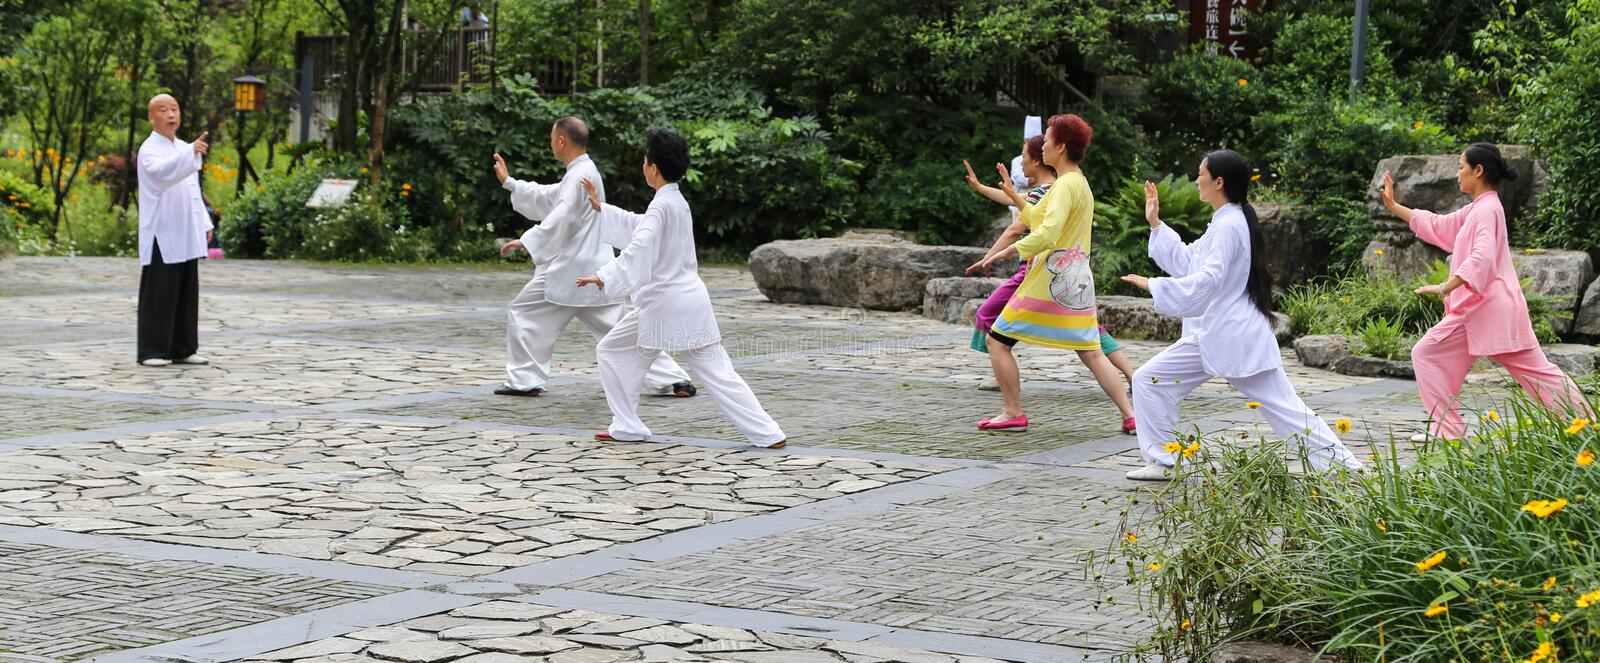 Playing chinese shadow boxing in qili town,mount emei,shichuan,china stock image